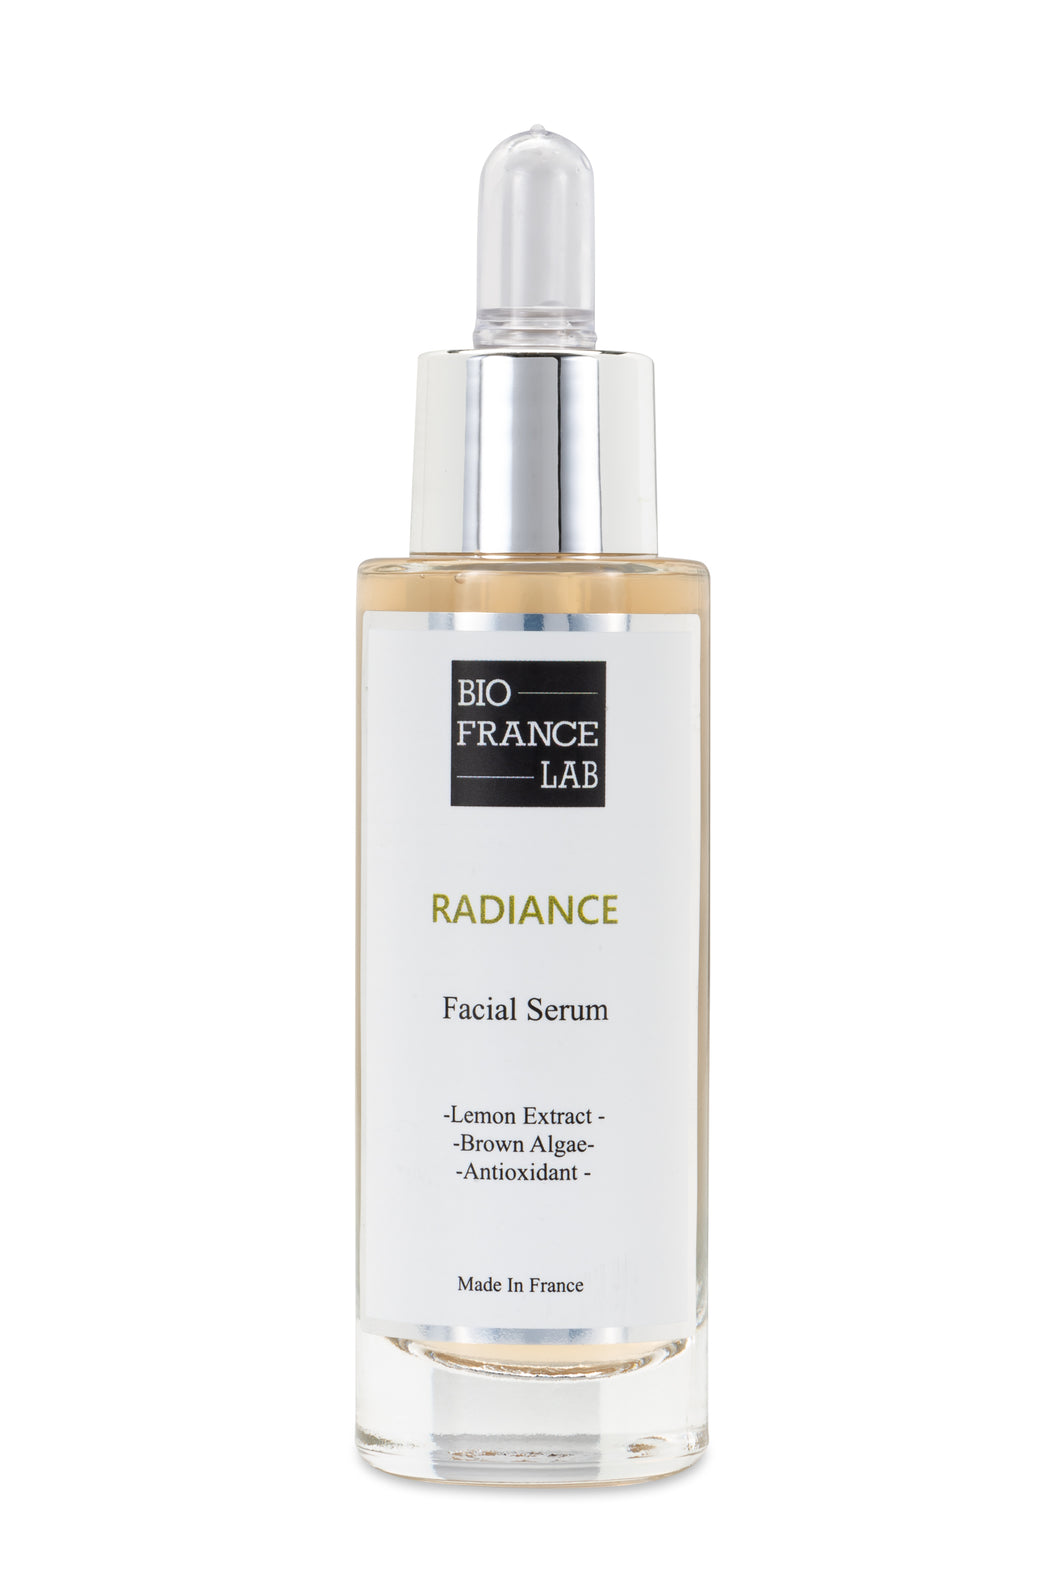 RADIANCE facial ampoule serum 1 oz